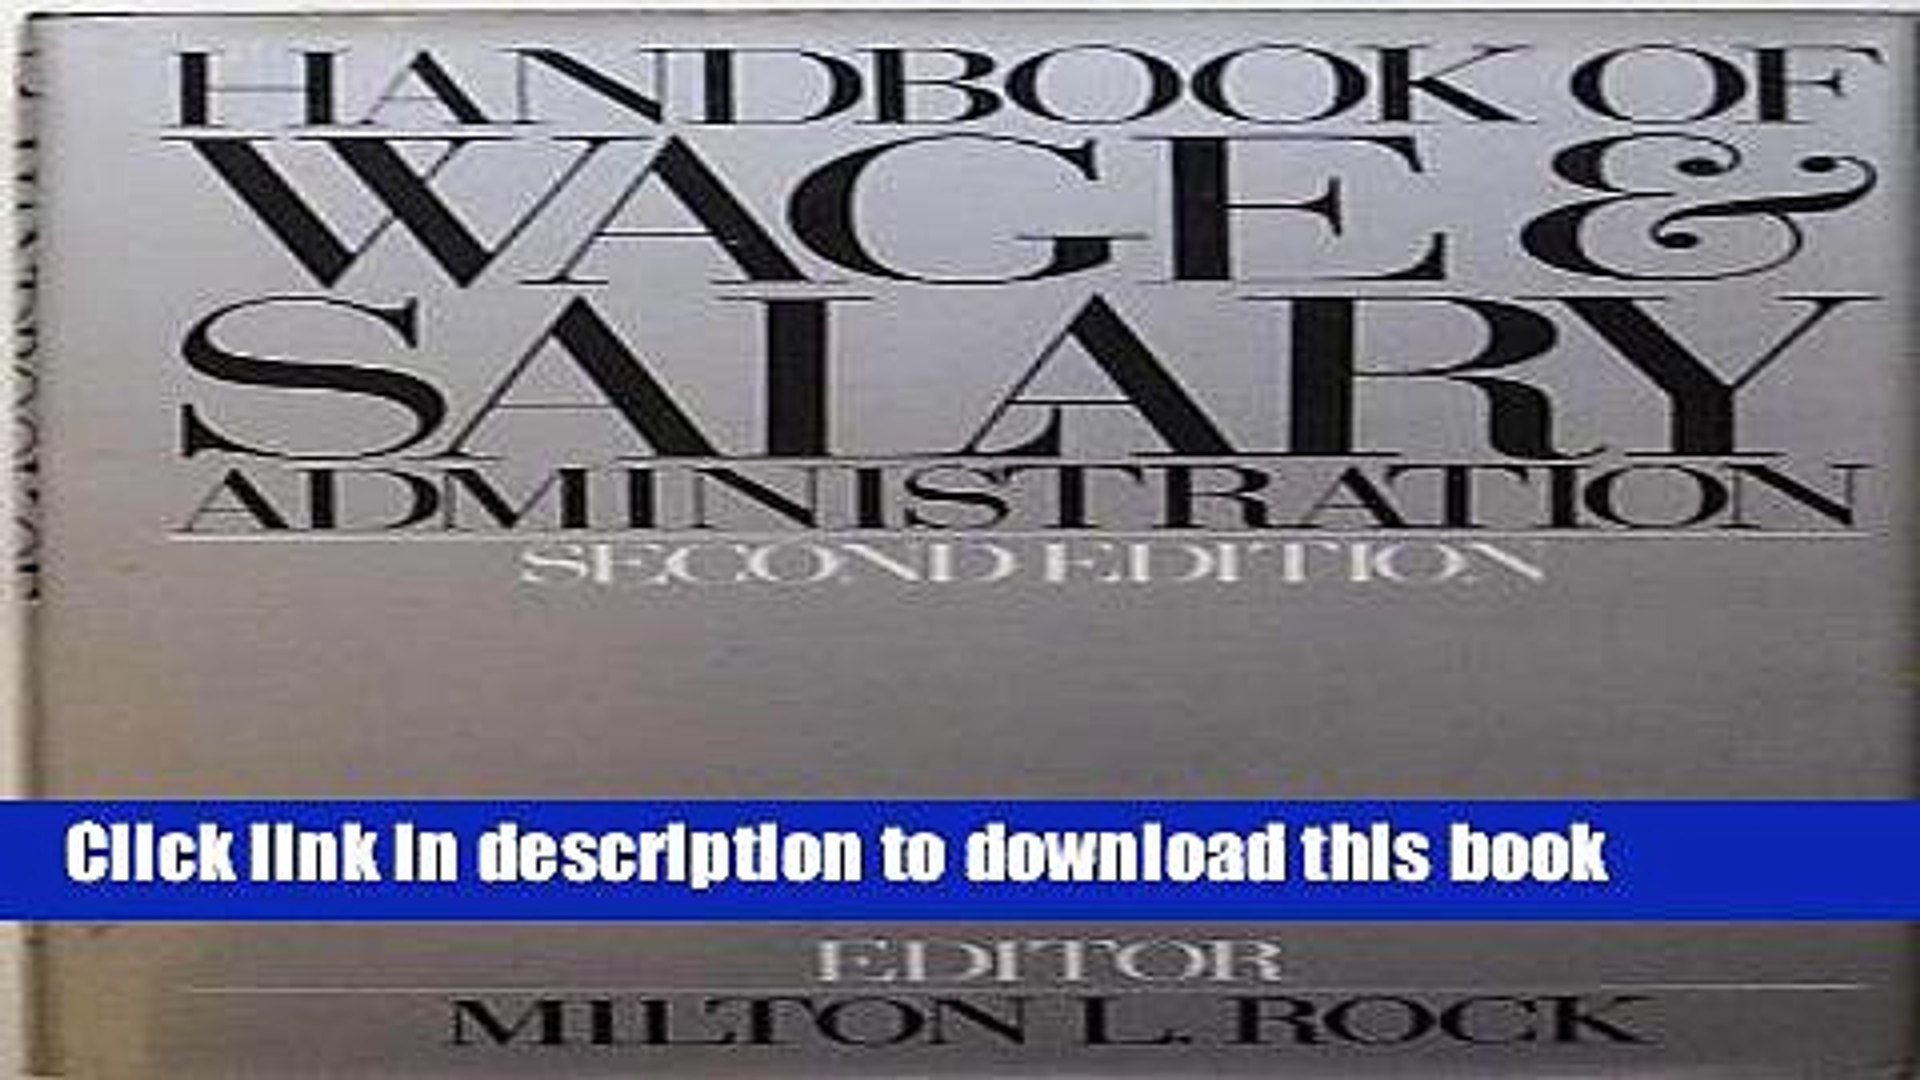 [Read PDF] Handbook of Wage and Salary Administration Download Online